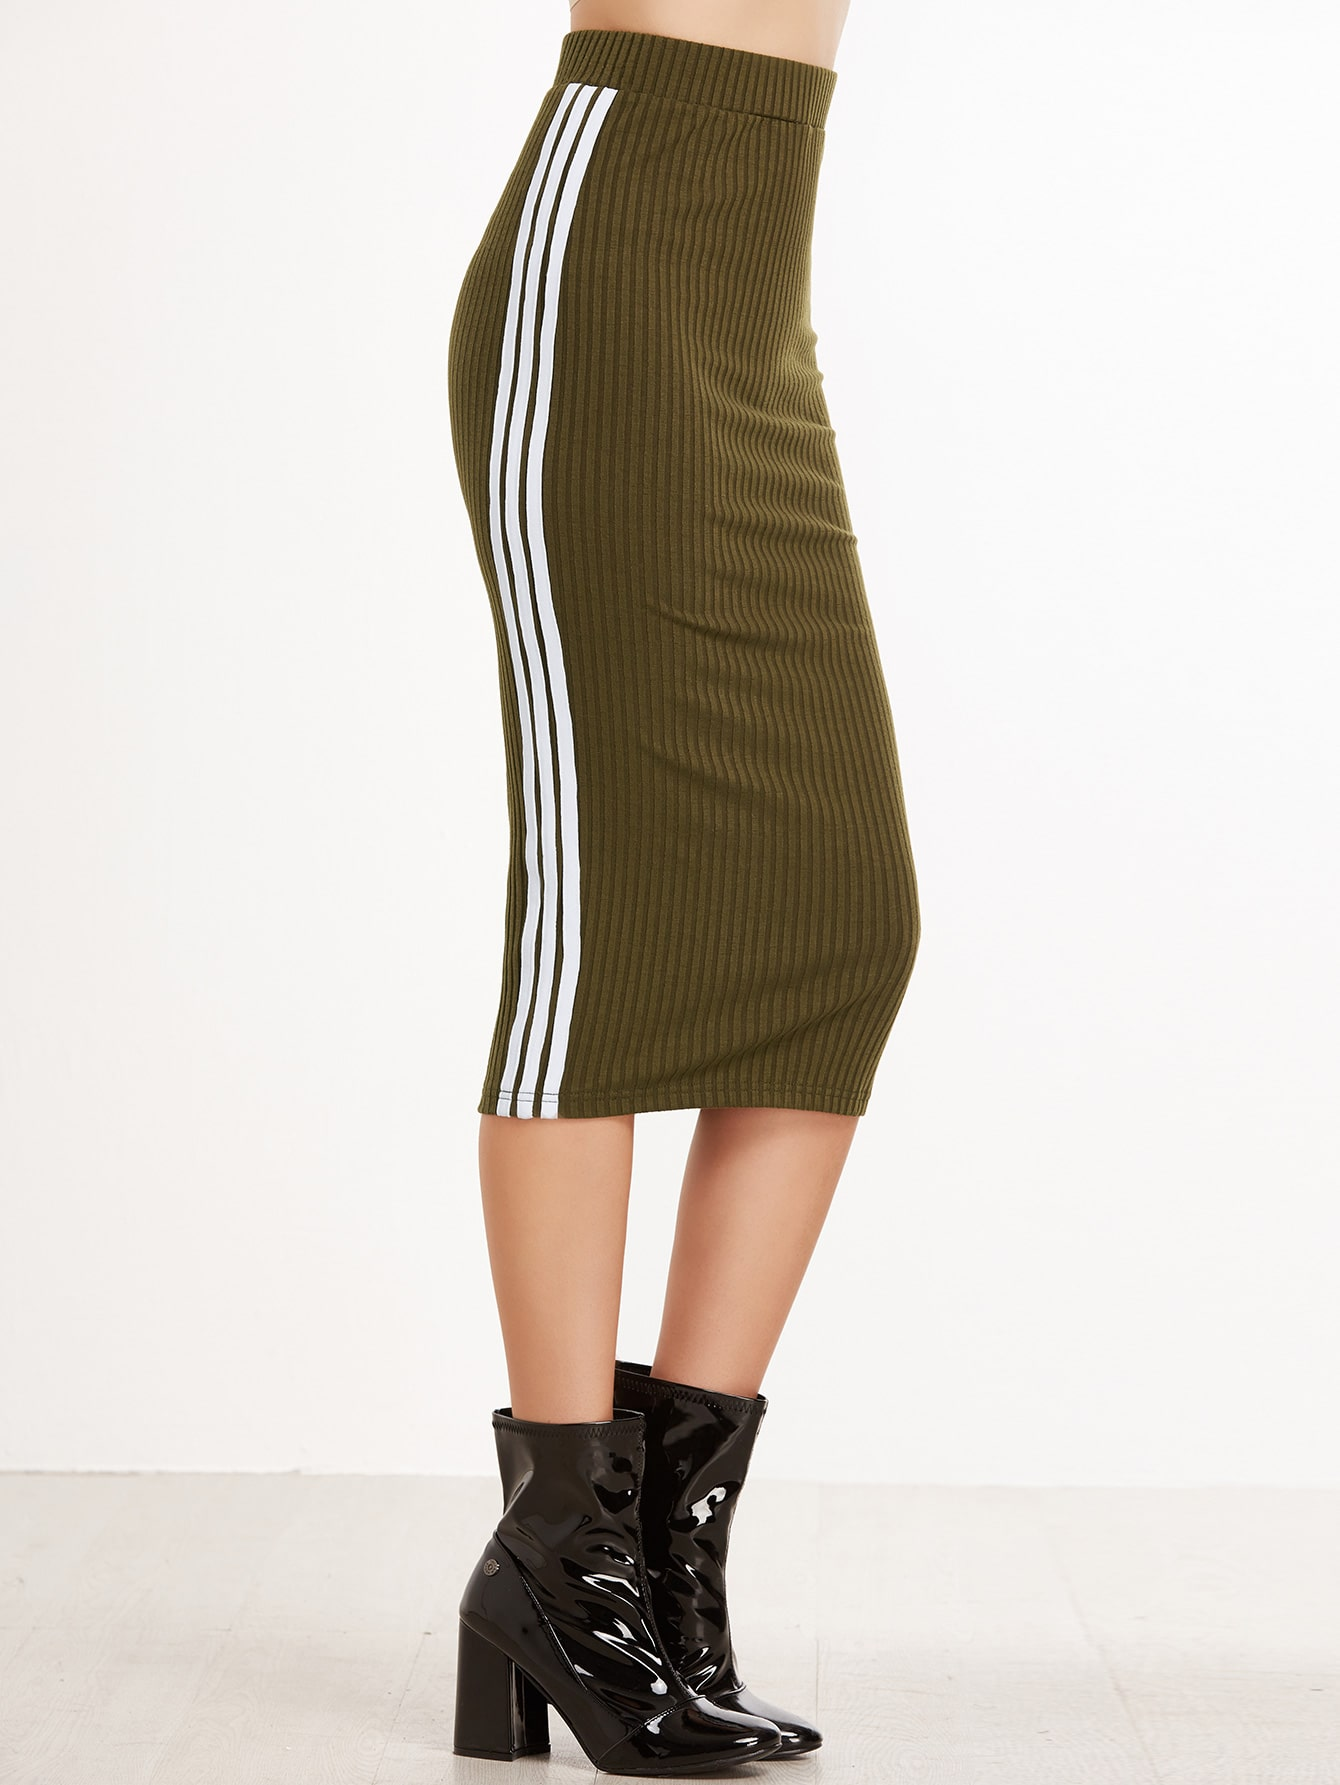 Army Green Striped Side Ribbed Knit Skirt skirt161117701